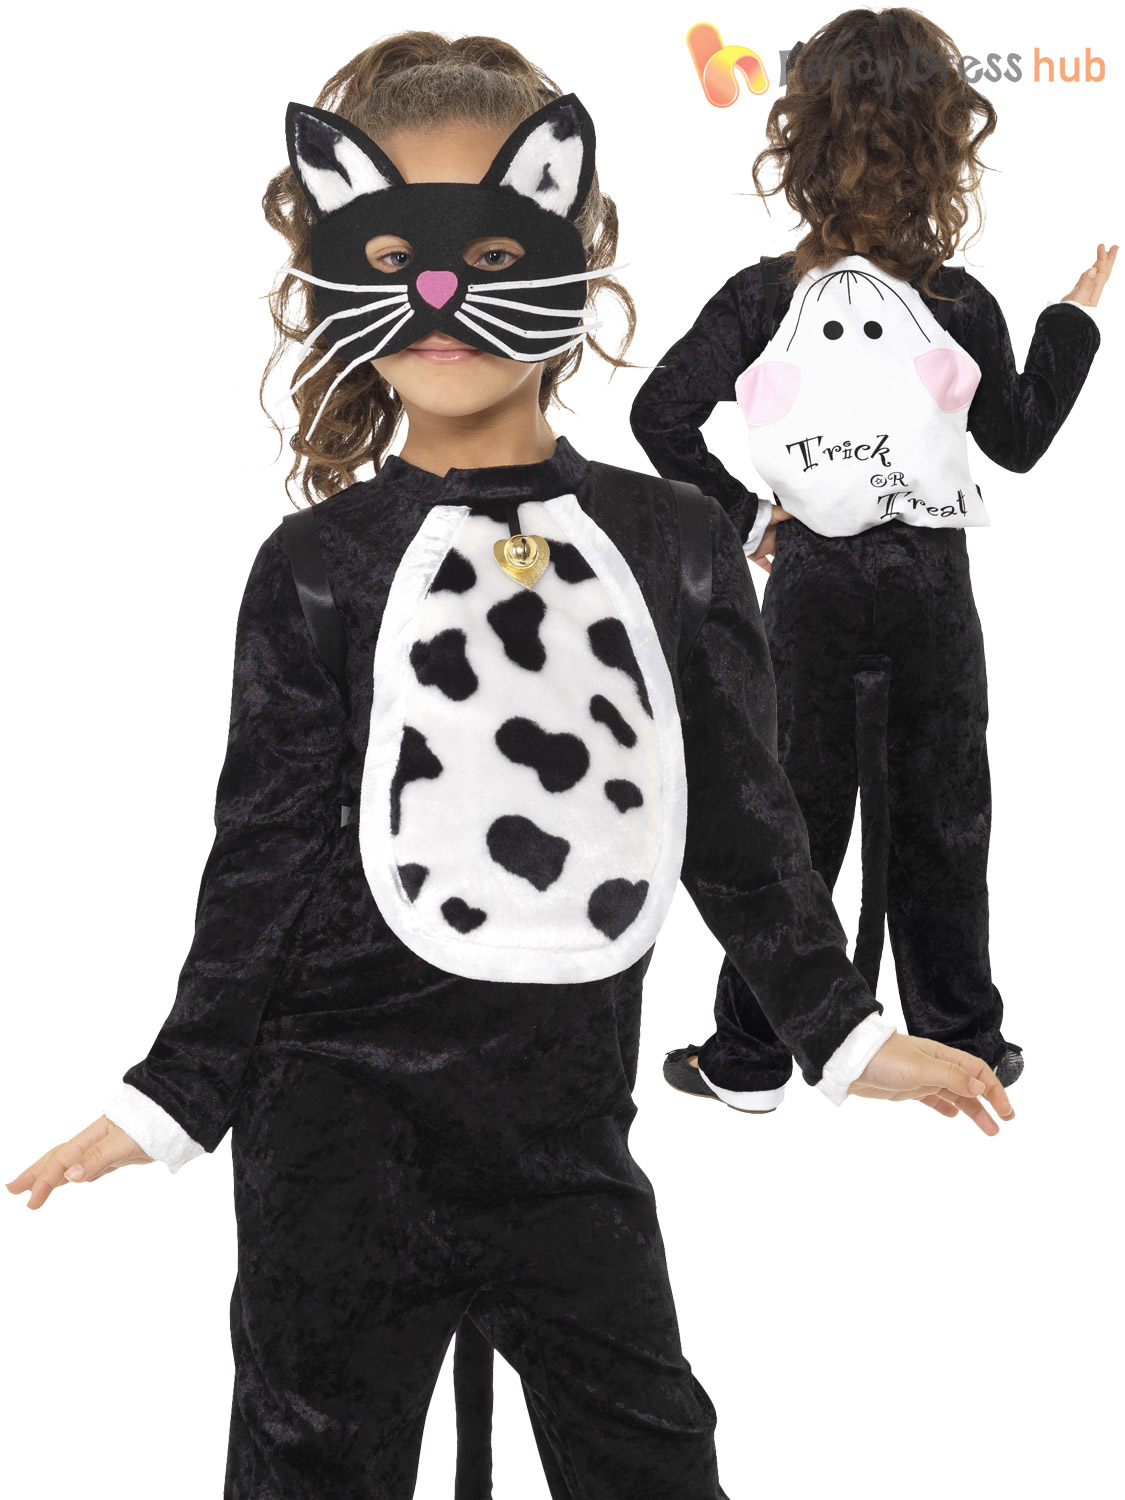 Girls Black Cat Costume Child Animal Halloween Fancy Dress Kids Book Week Outfit